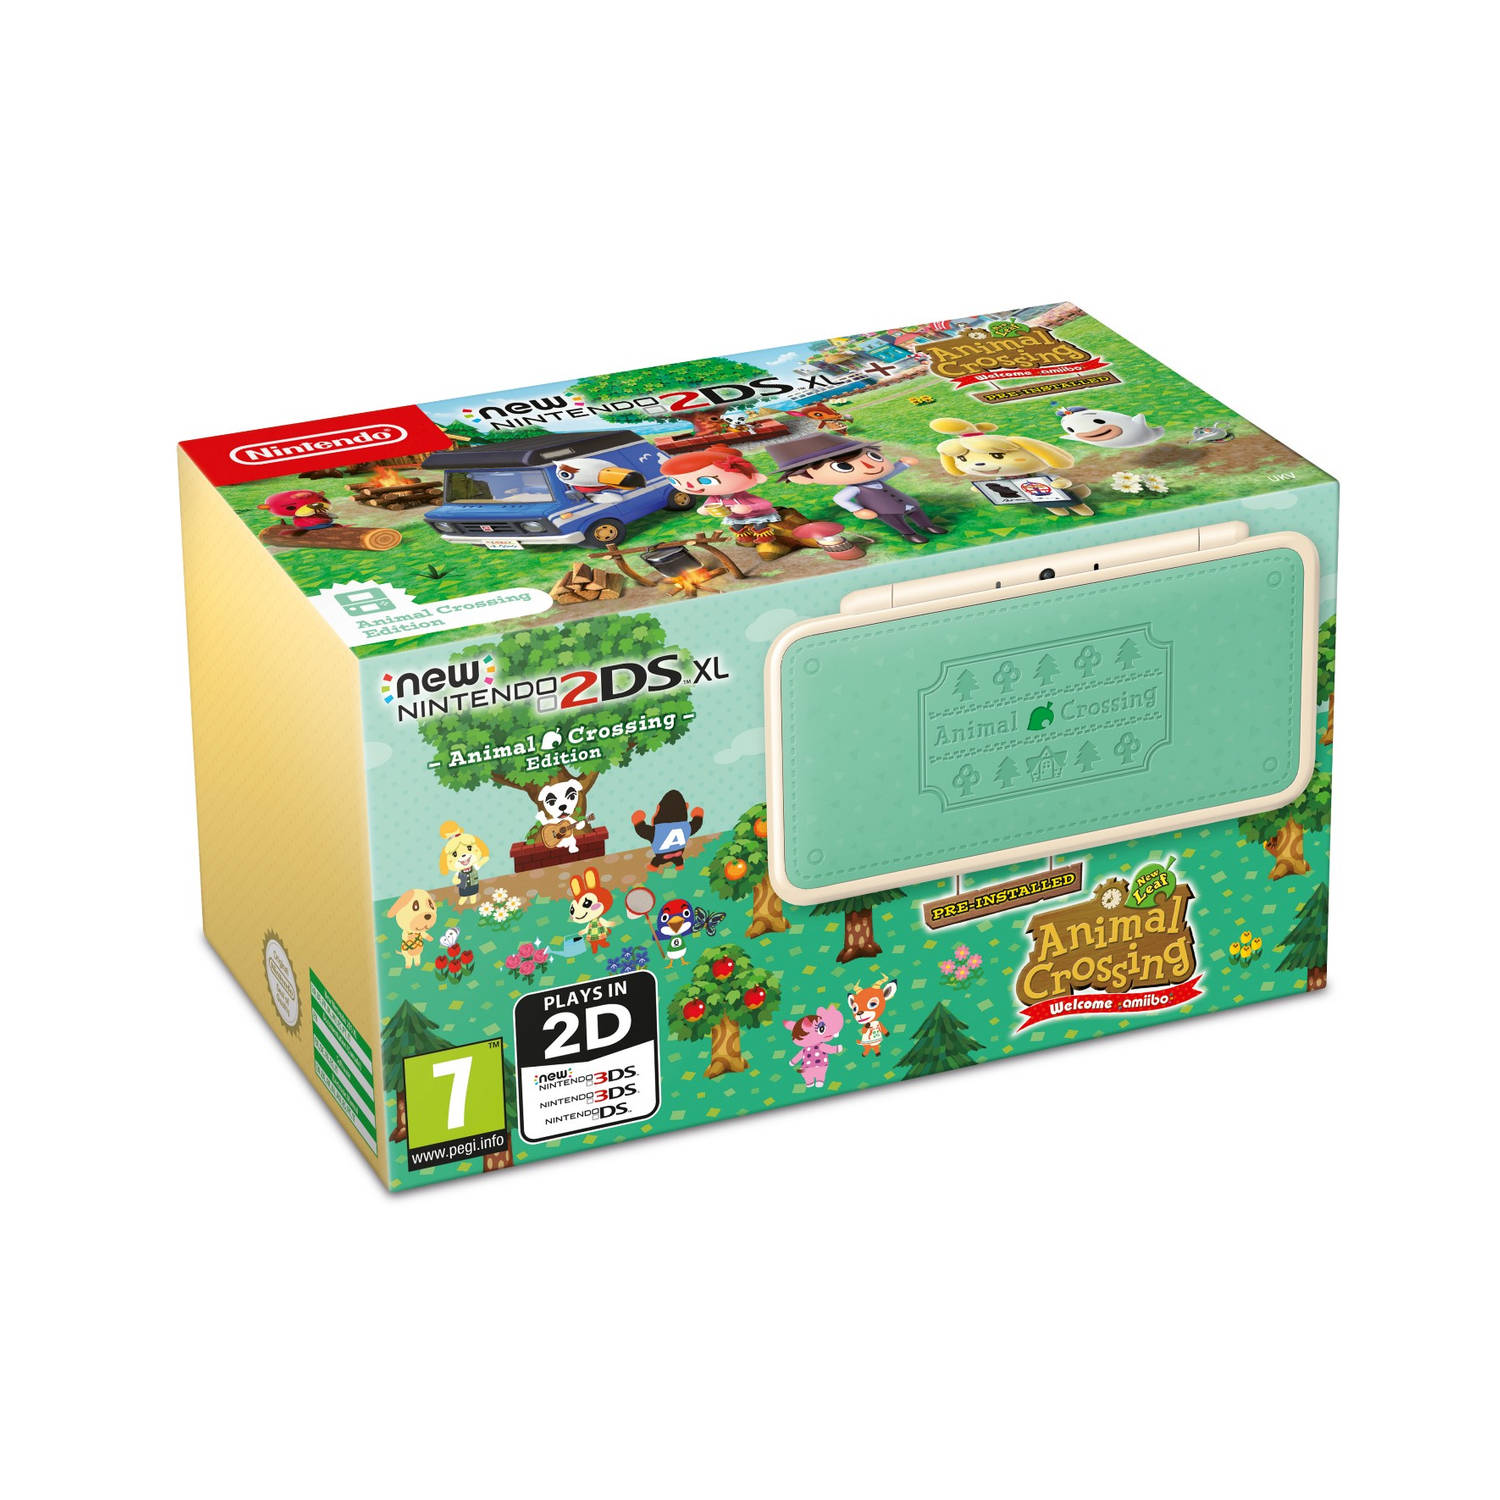 New Nintendo 2DS XL + Animal Crossing New Leaf